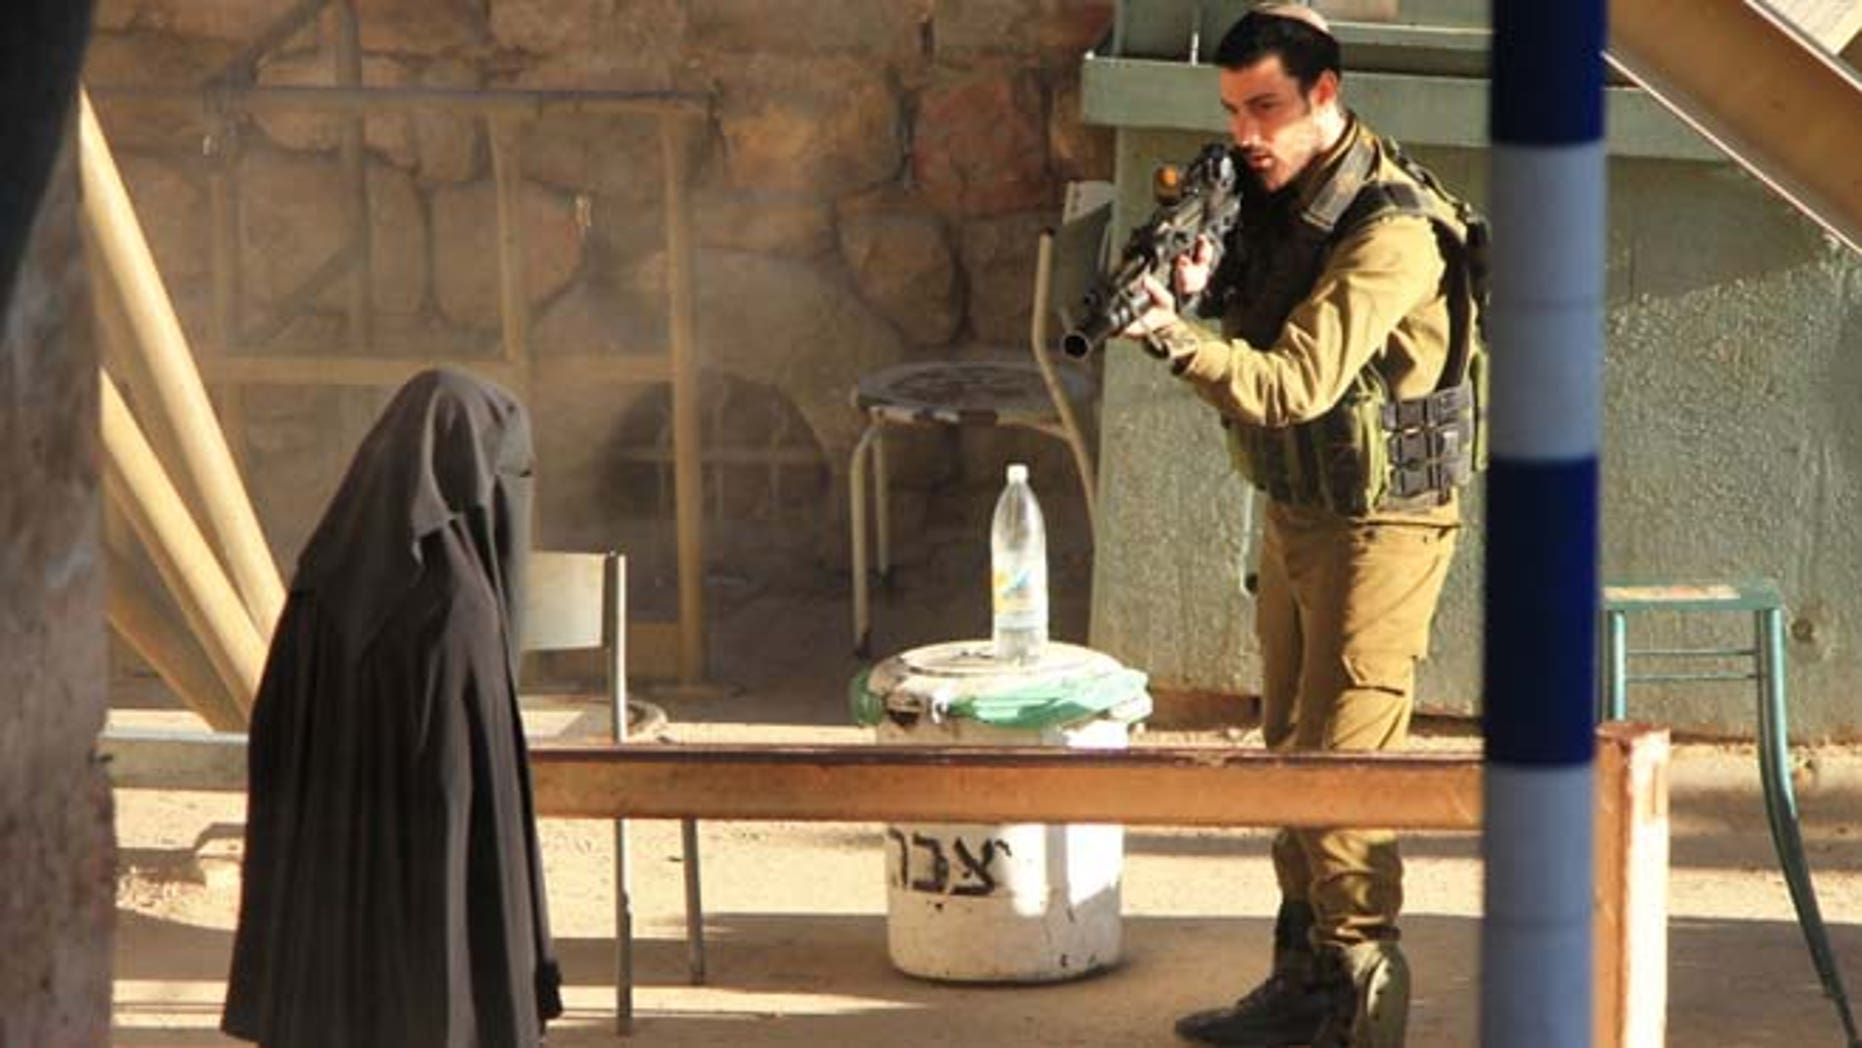 Sept. 22, 2015: An Israeli soldier aims at a Palestinian woman at a checkpoint in the West Bank city of Hebron.